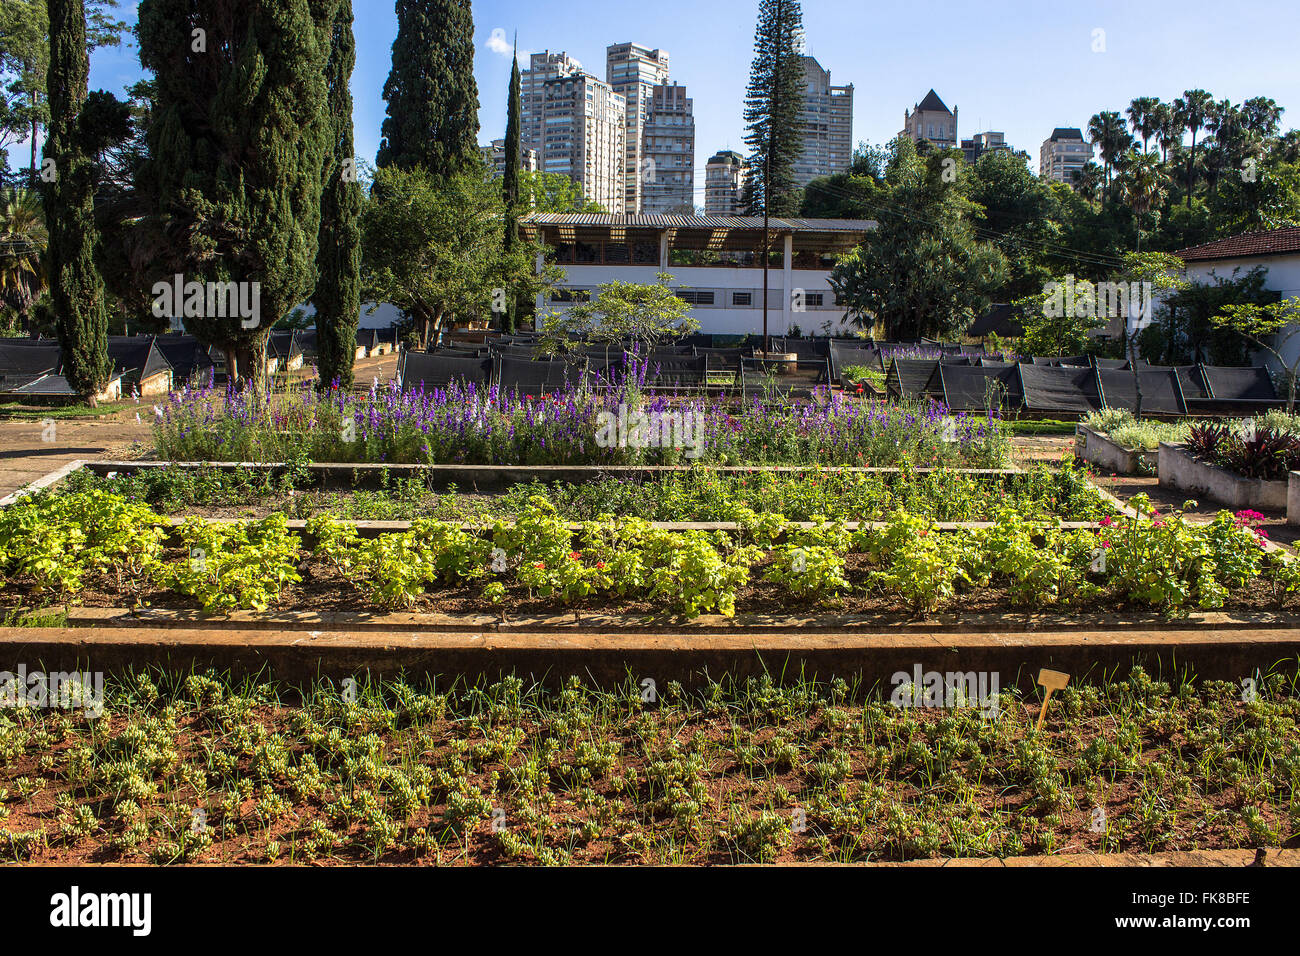 Nursery beds suspended Manequinho Lopes - Ibirapuera Park - Stock Image